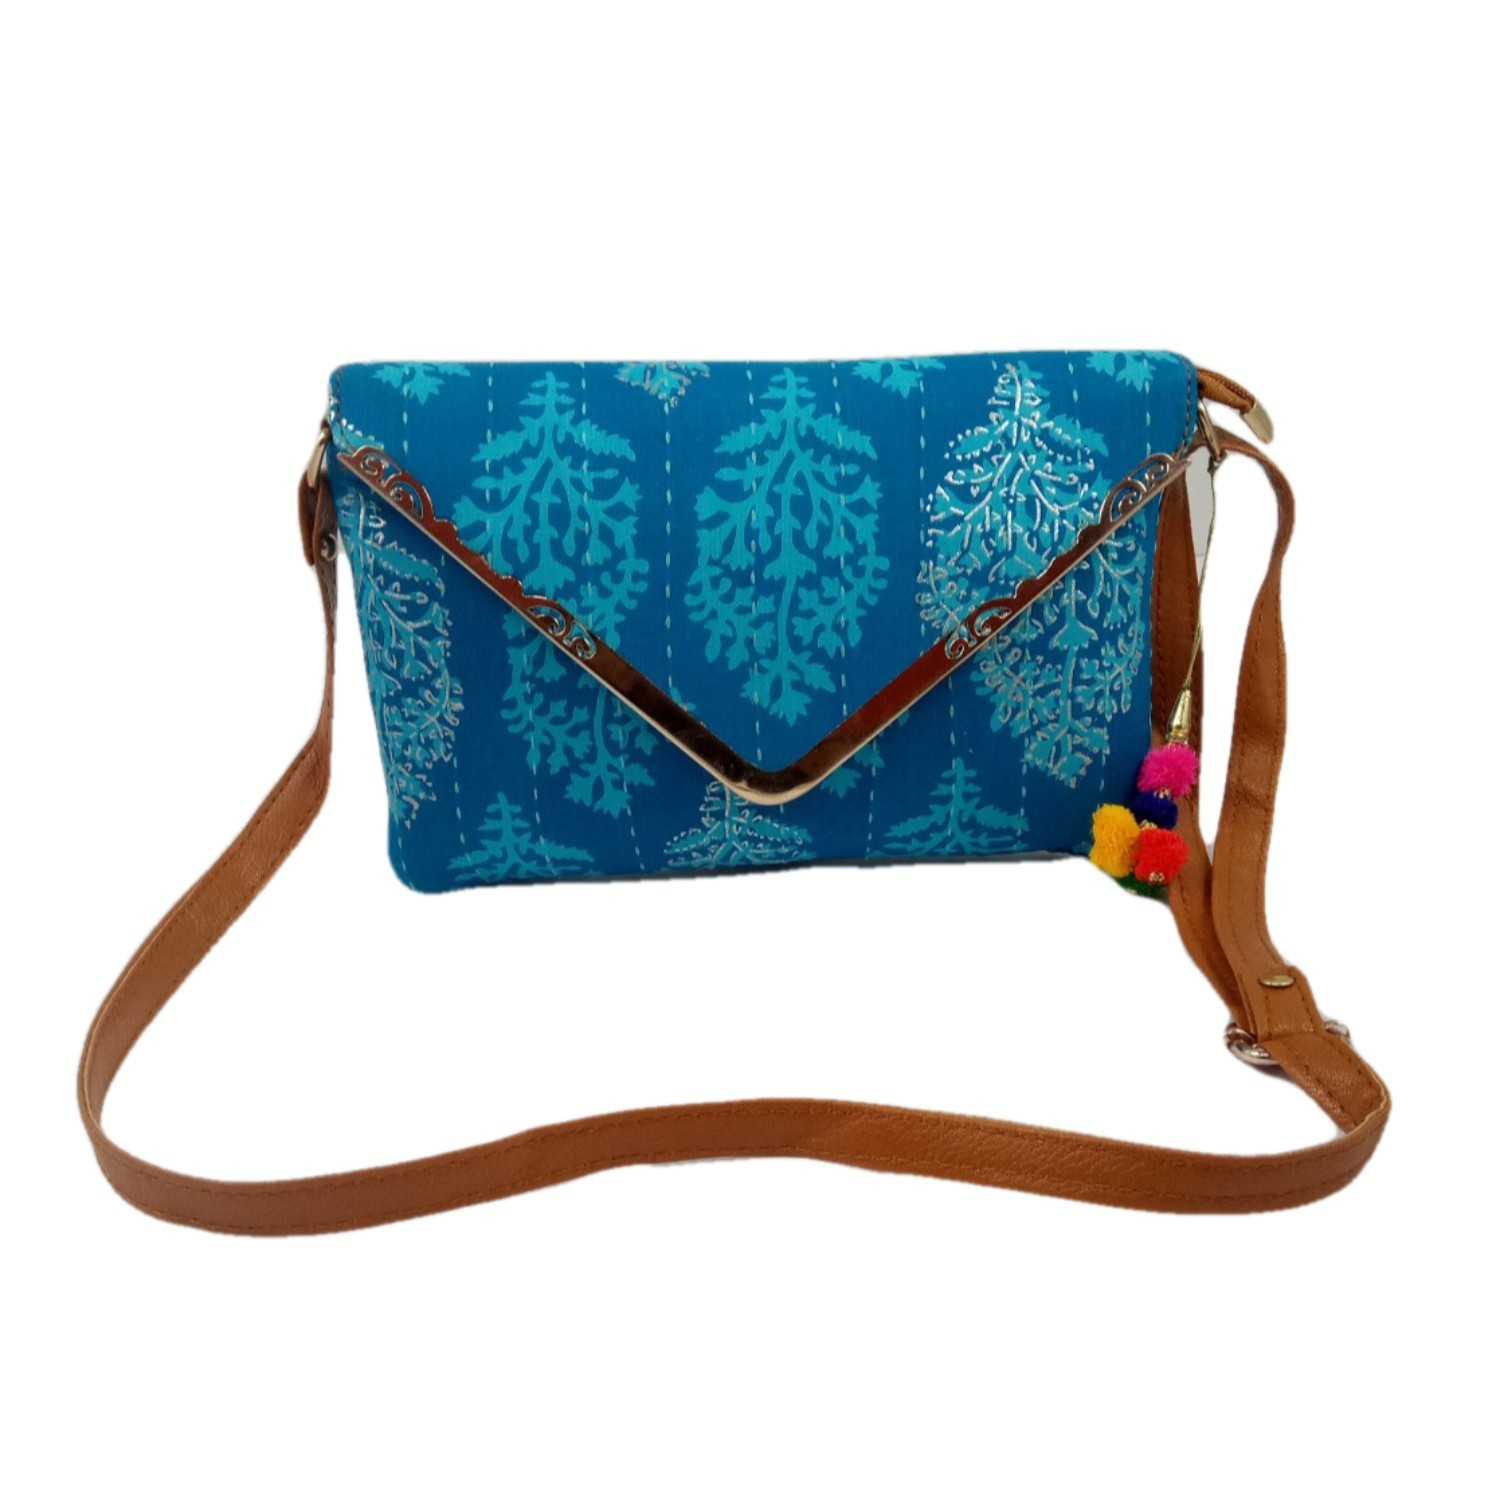 Handmade Excellent Sky Blue Genuine Clutch or Shoulder Bag by Women Self Help Groups of Rajasthan